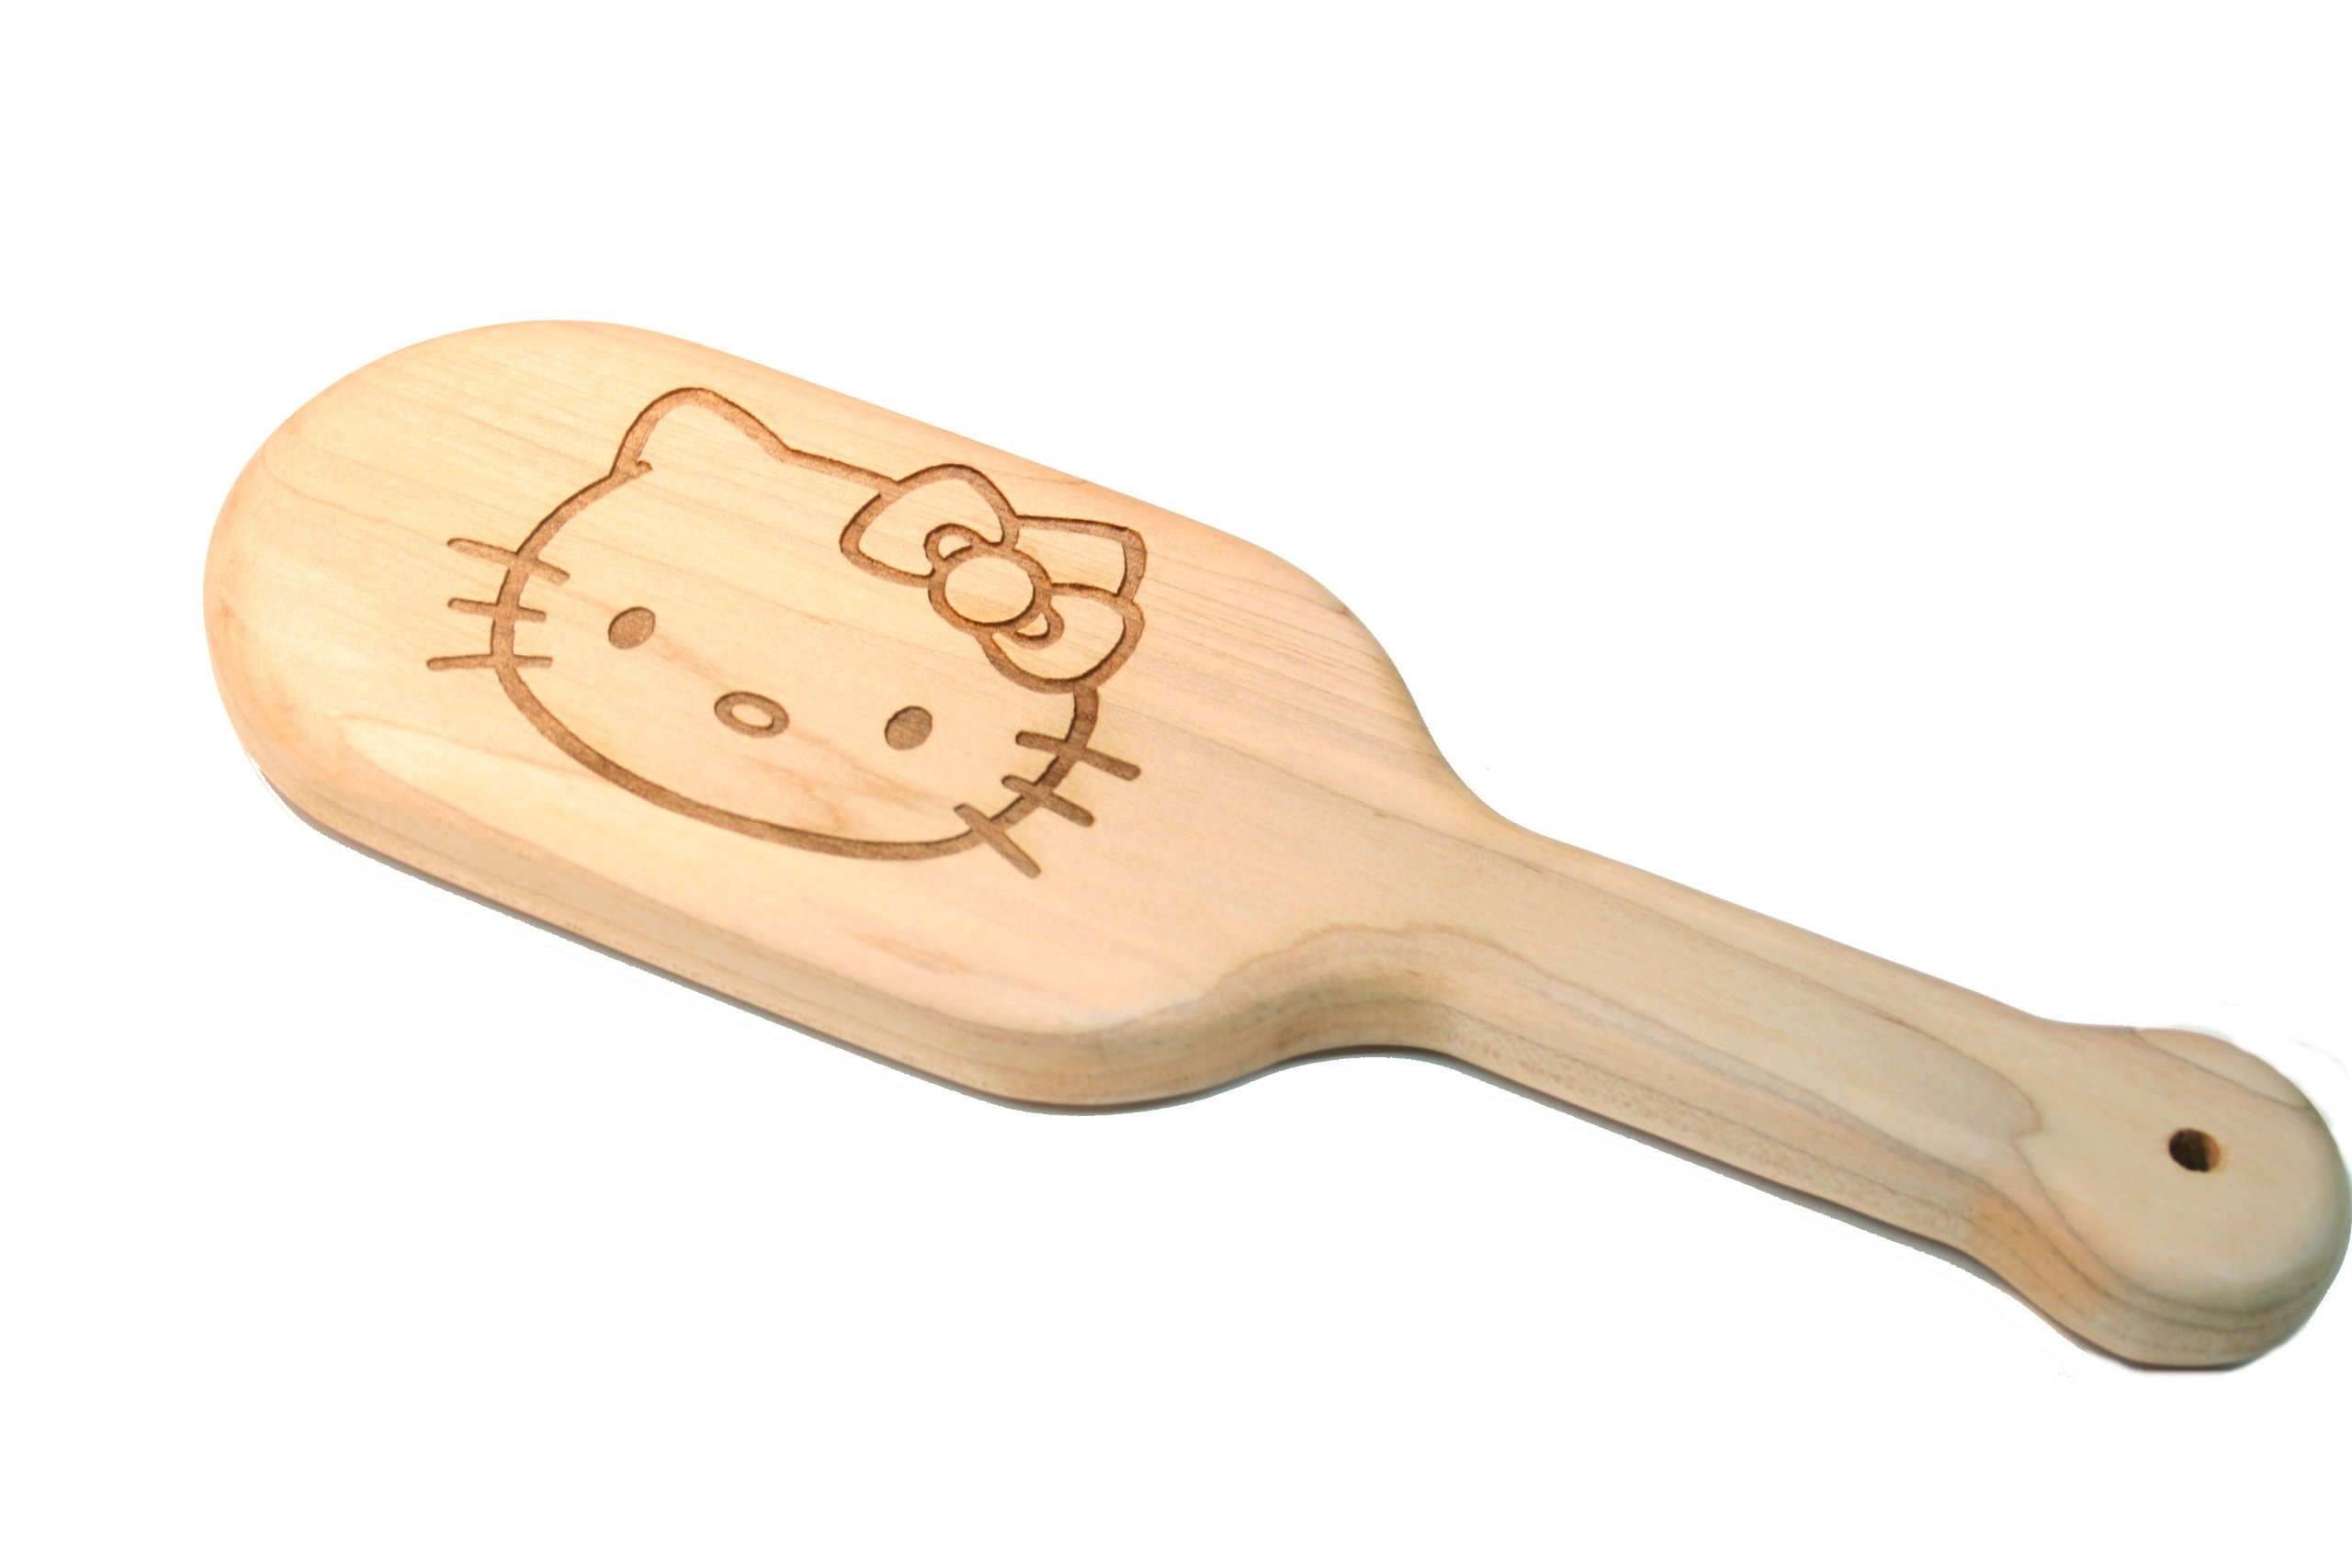 Laser Engraved Kitty BDSM Spanking Paddle in Solid Maple Fetish BDSM Sex Gear by The Kink Factory USA by The Kink Factory